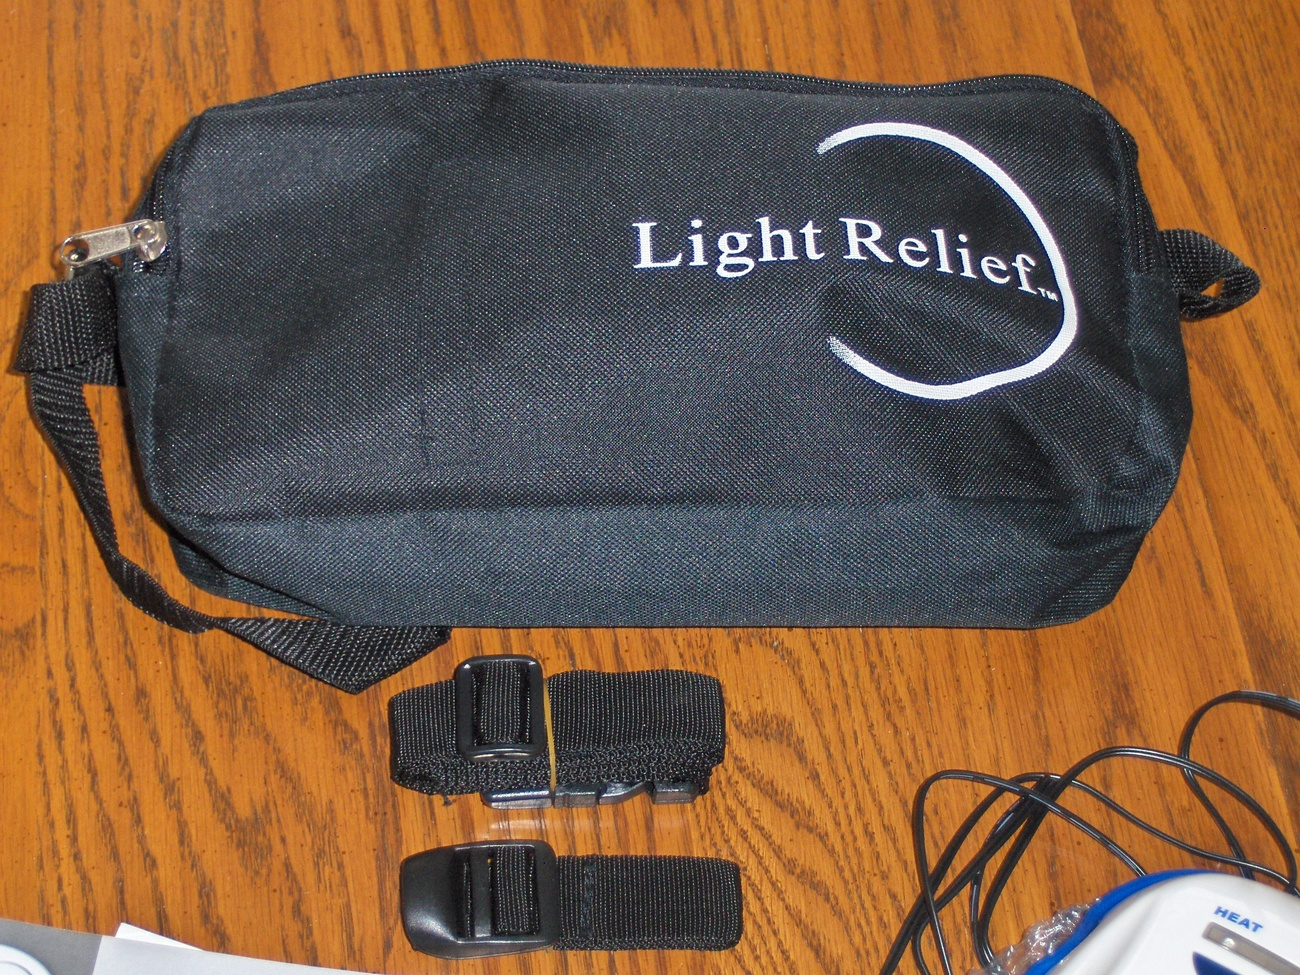 Light Relief Lr150 Infrared Joint Muscle Pain Stiffness